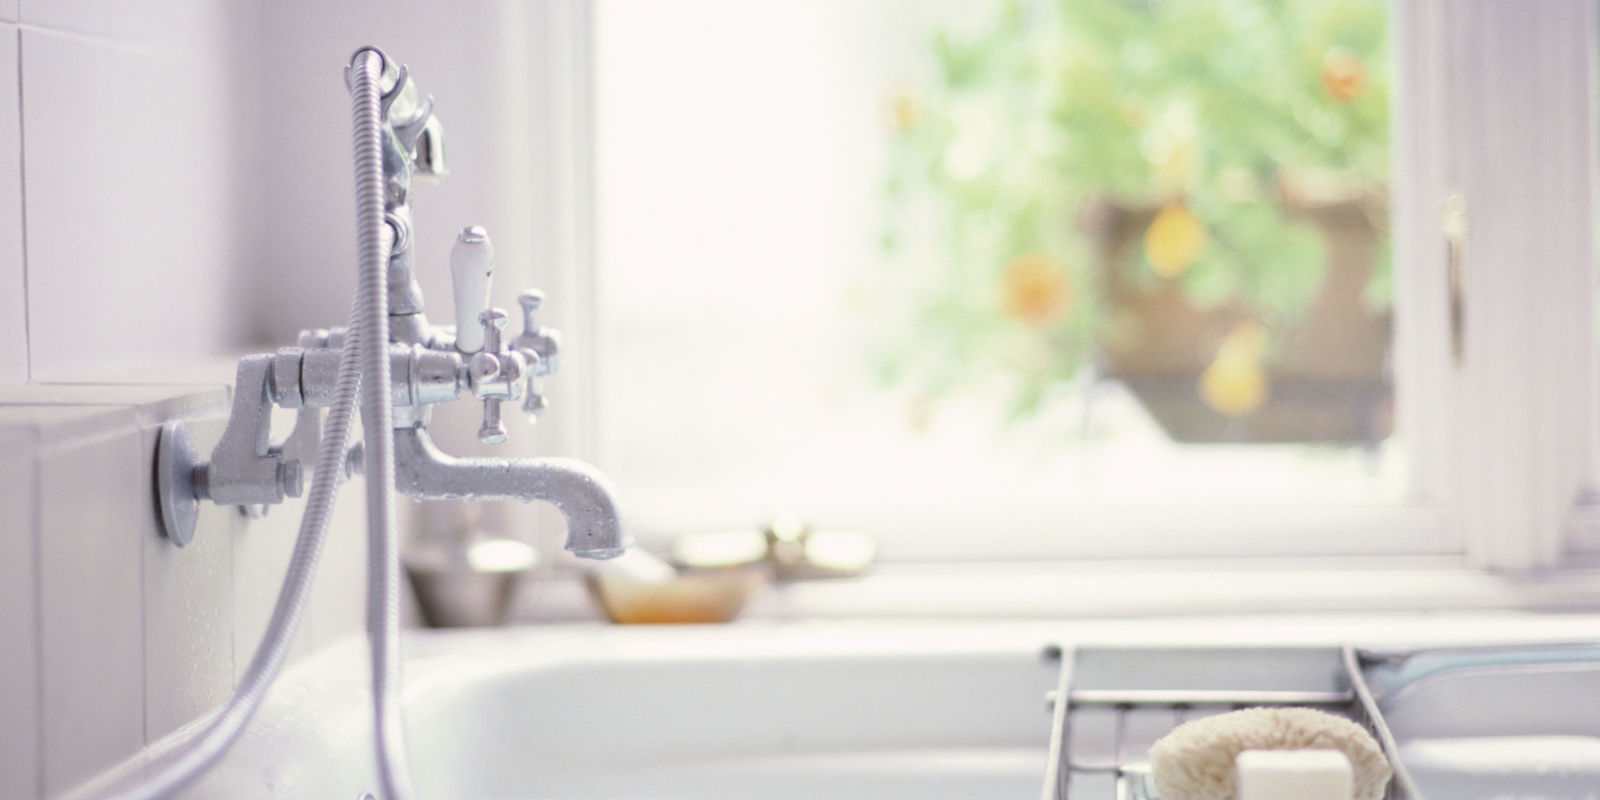 Cleaning your bathroom bathroom cleaning mistakes How to thoroughly clean your bathroom